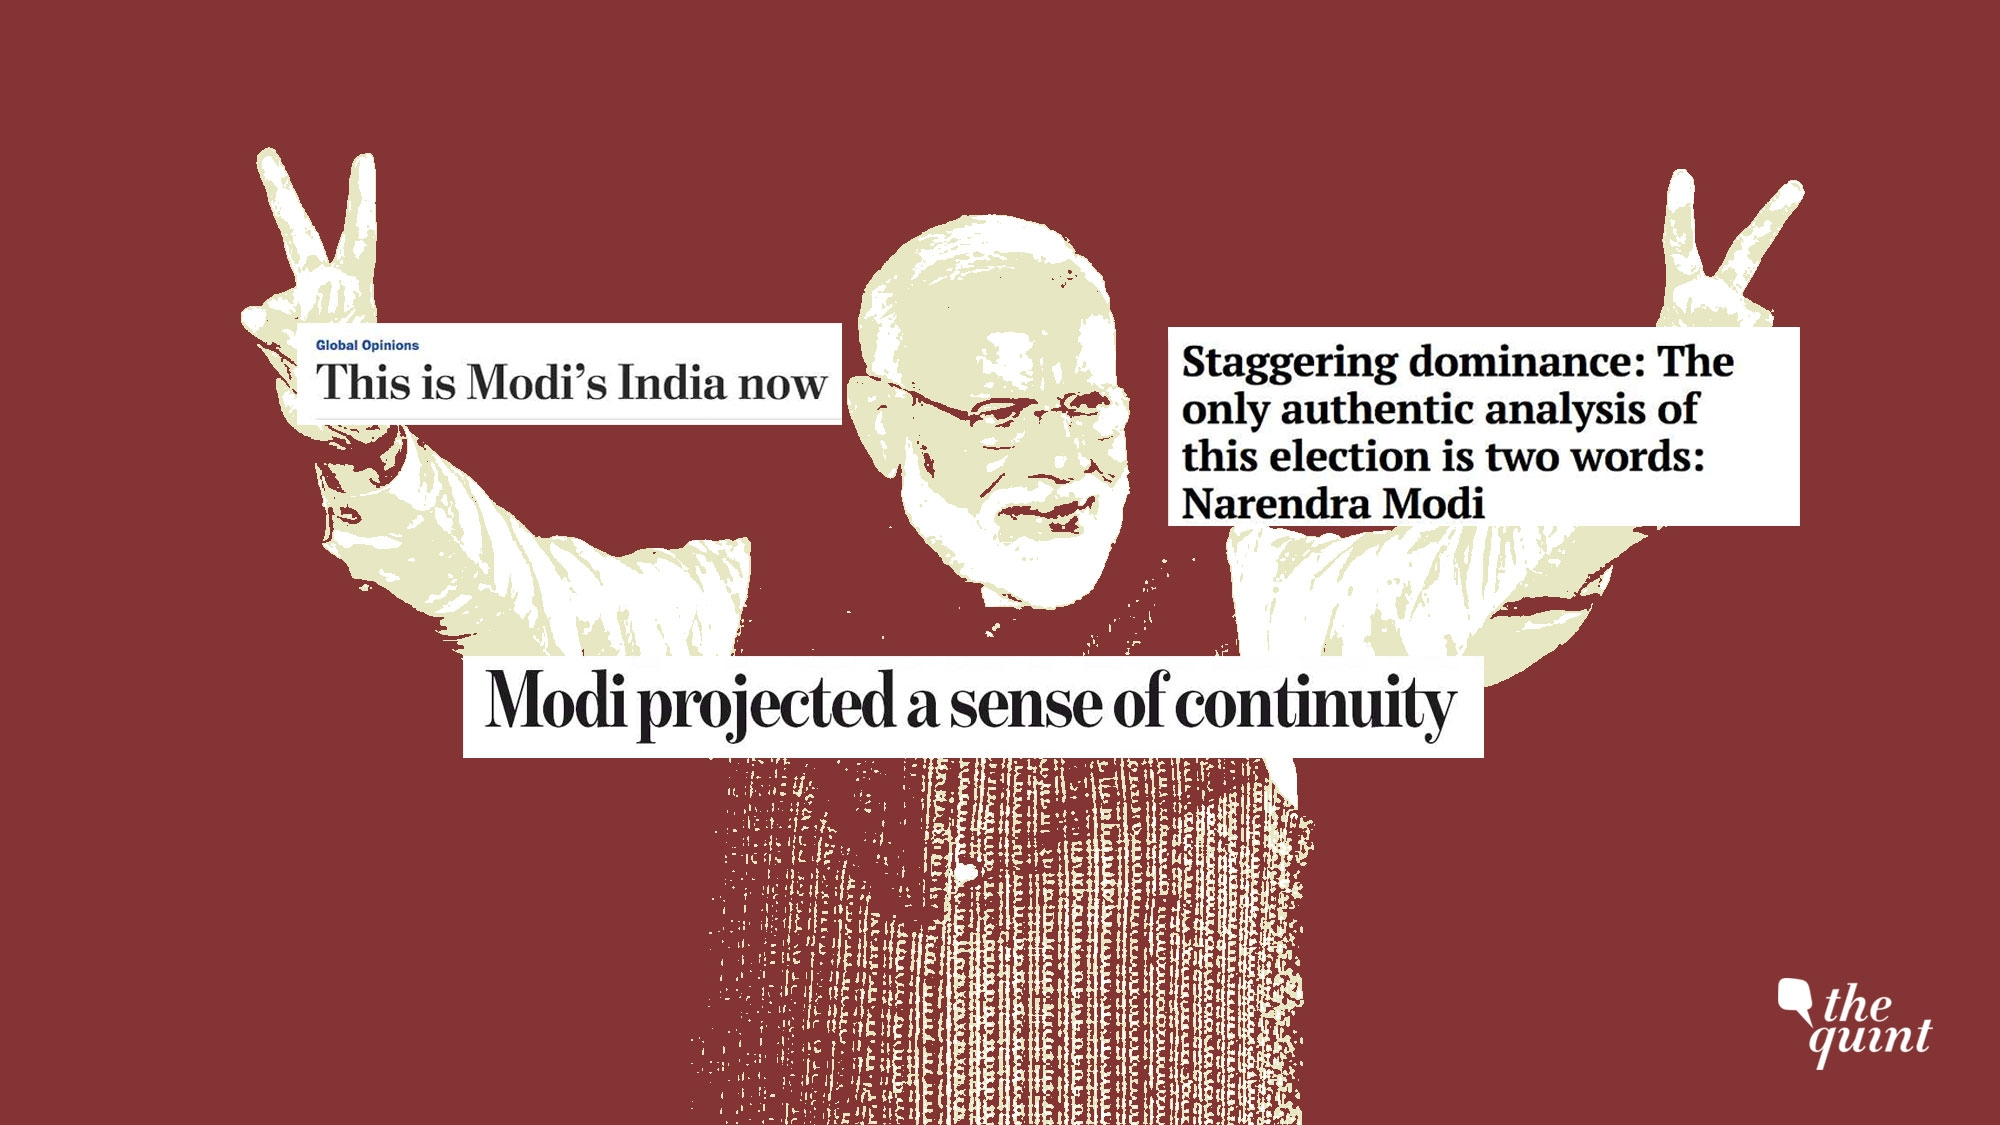 'Staggering Dominance': How Media Opined on Modi's LS Victory